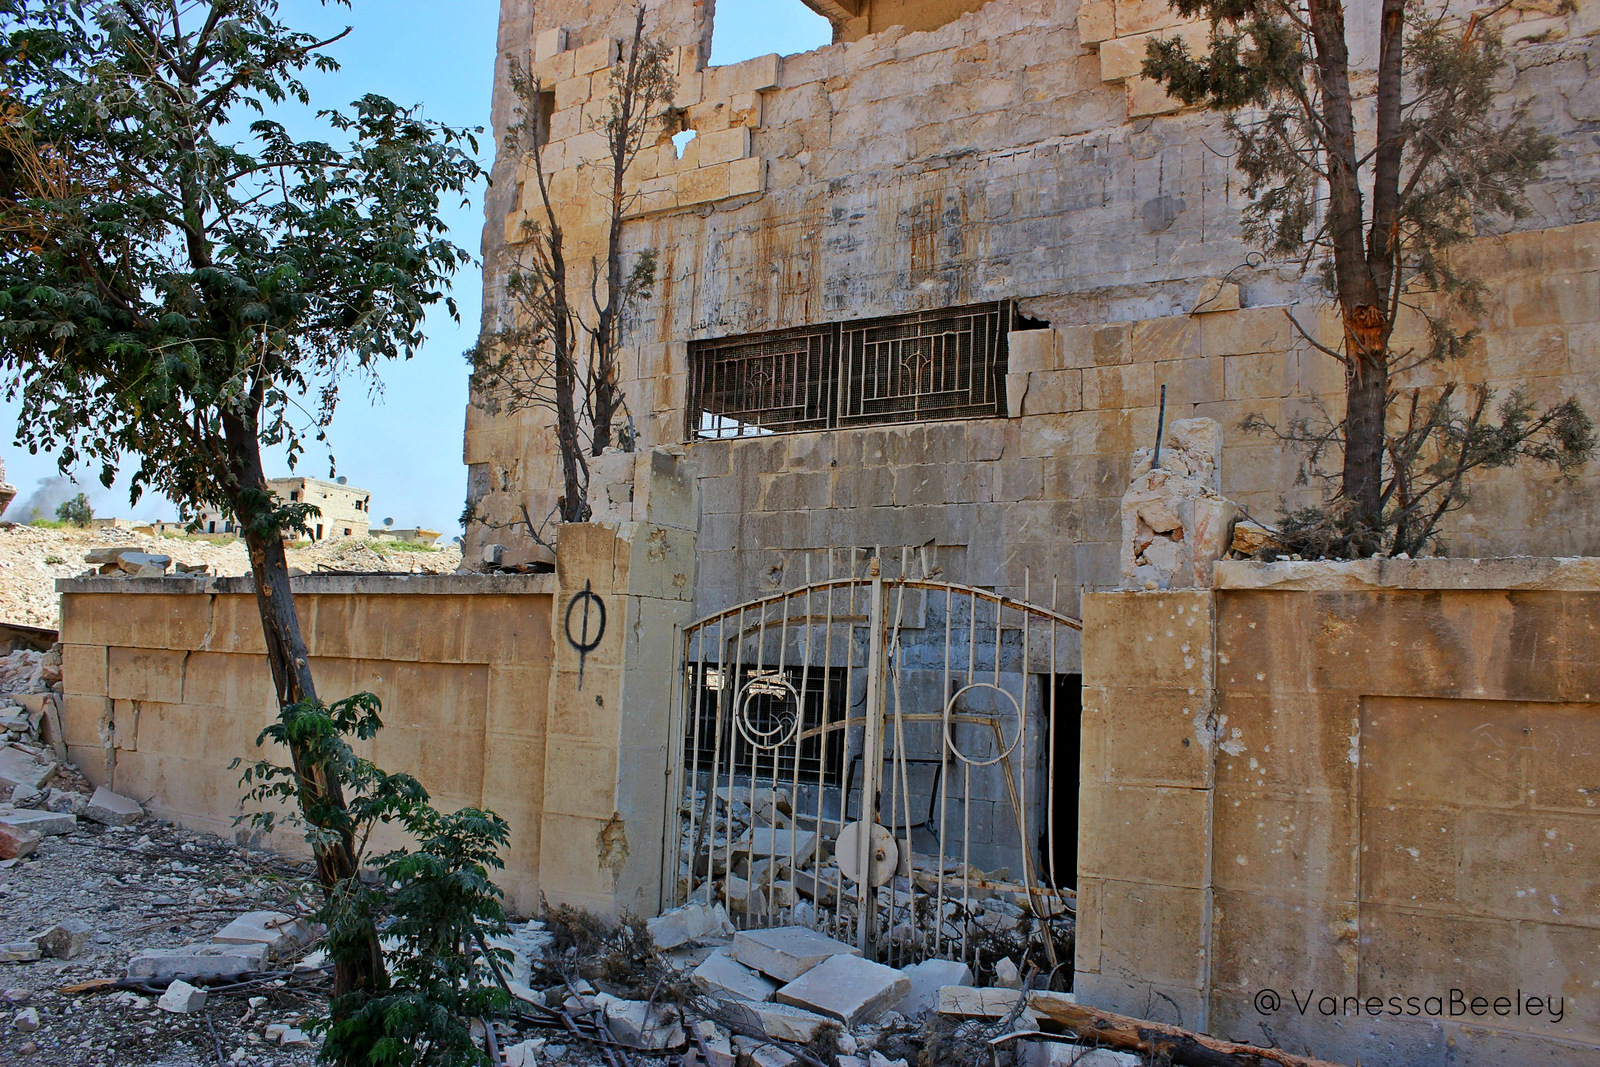 Remains of the headquarters of the 16th Division of the Free Syrian Army. We were told to be careful walking around inside because of the risk of uncleared IEDs that are left behind when terrorists flee an area they have occupied for any length of time. (Photo by Vanessa Beeley)